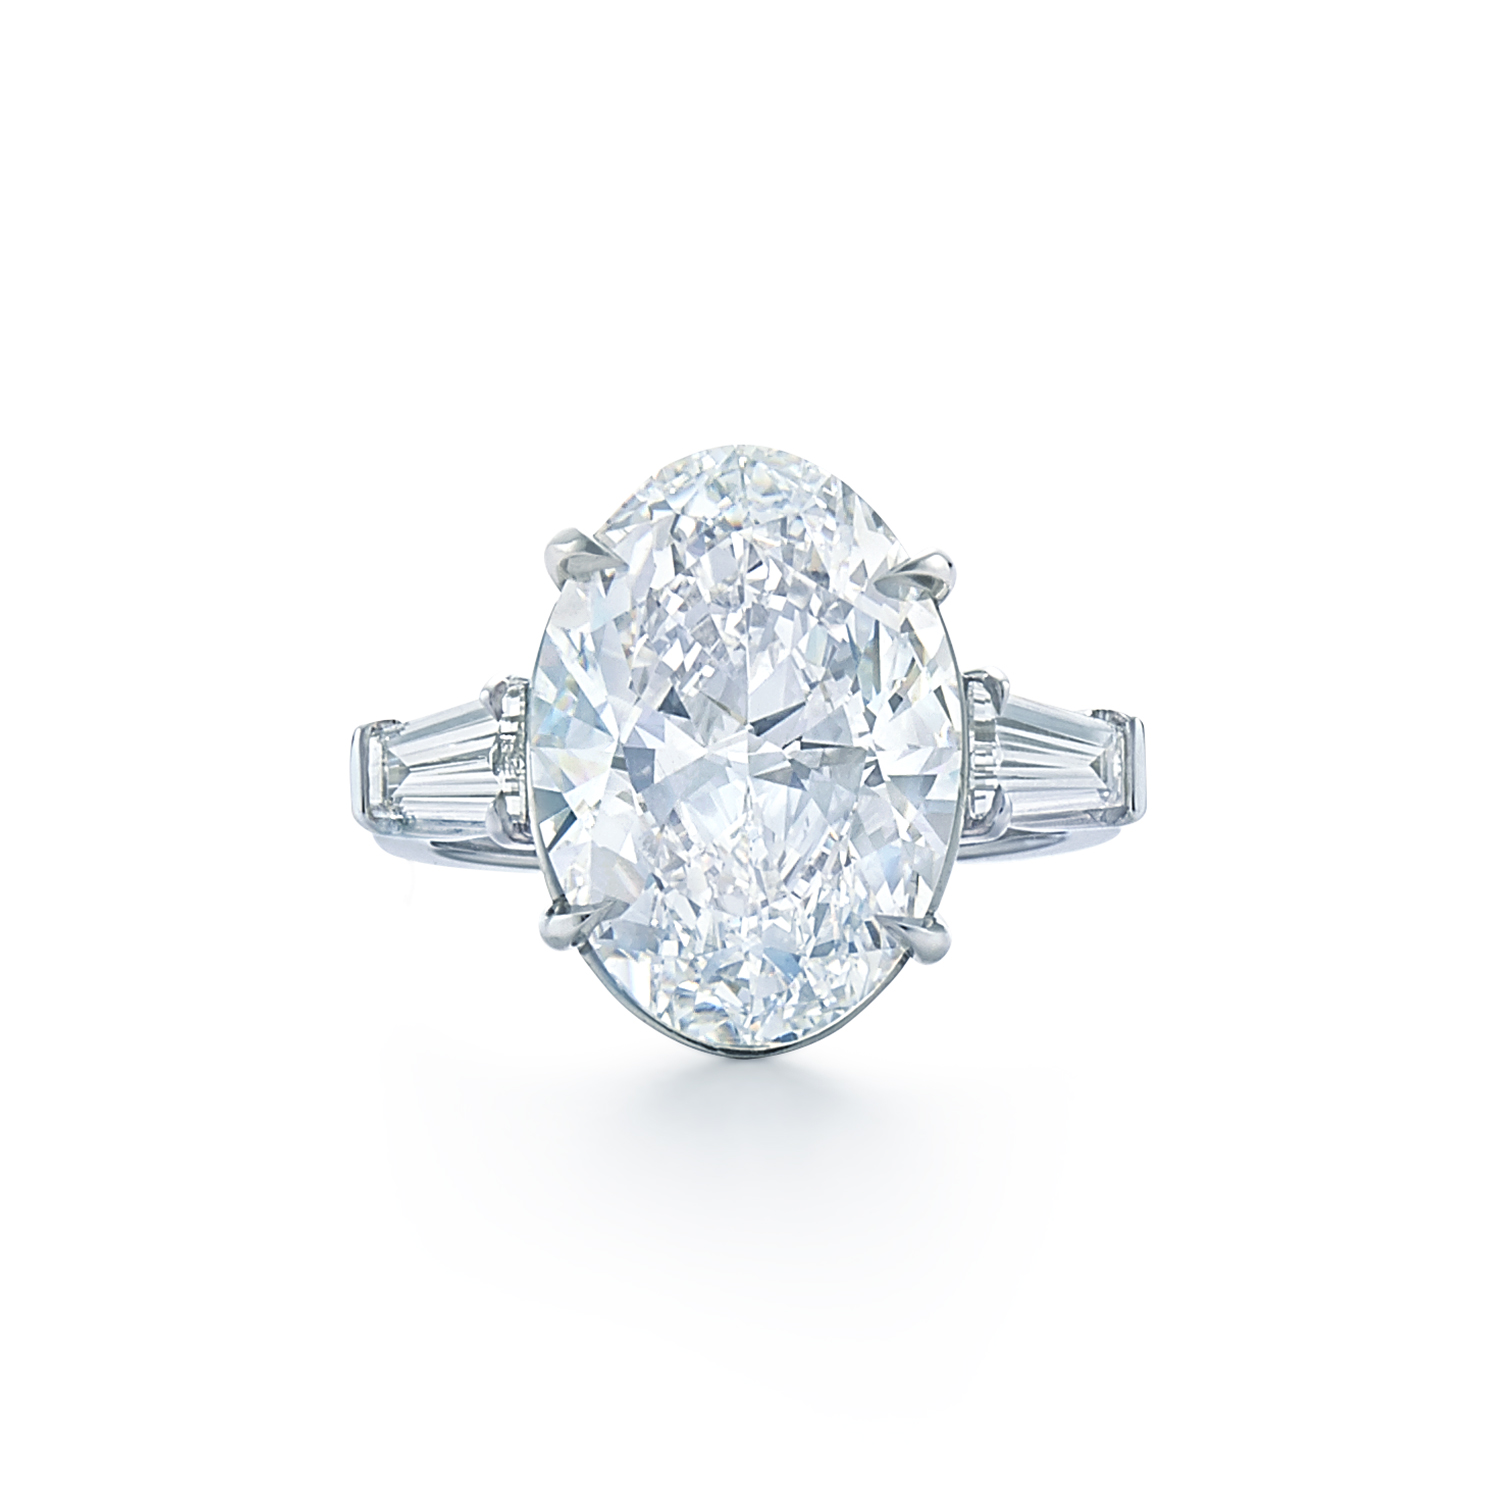 oval diamond ring with tapered baguette side stones set